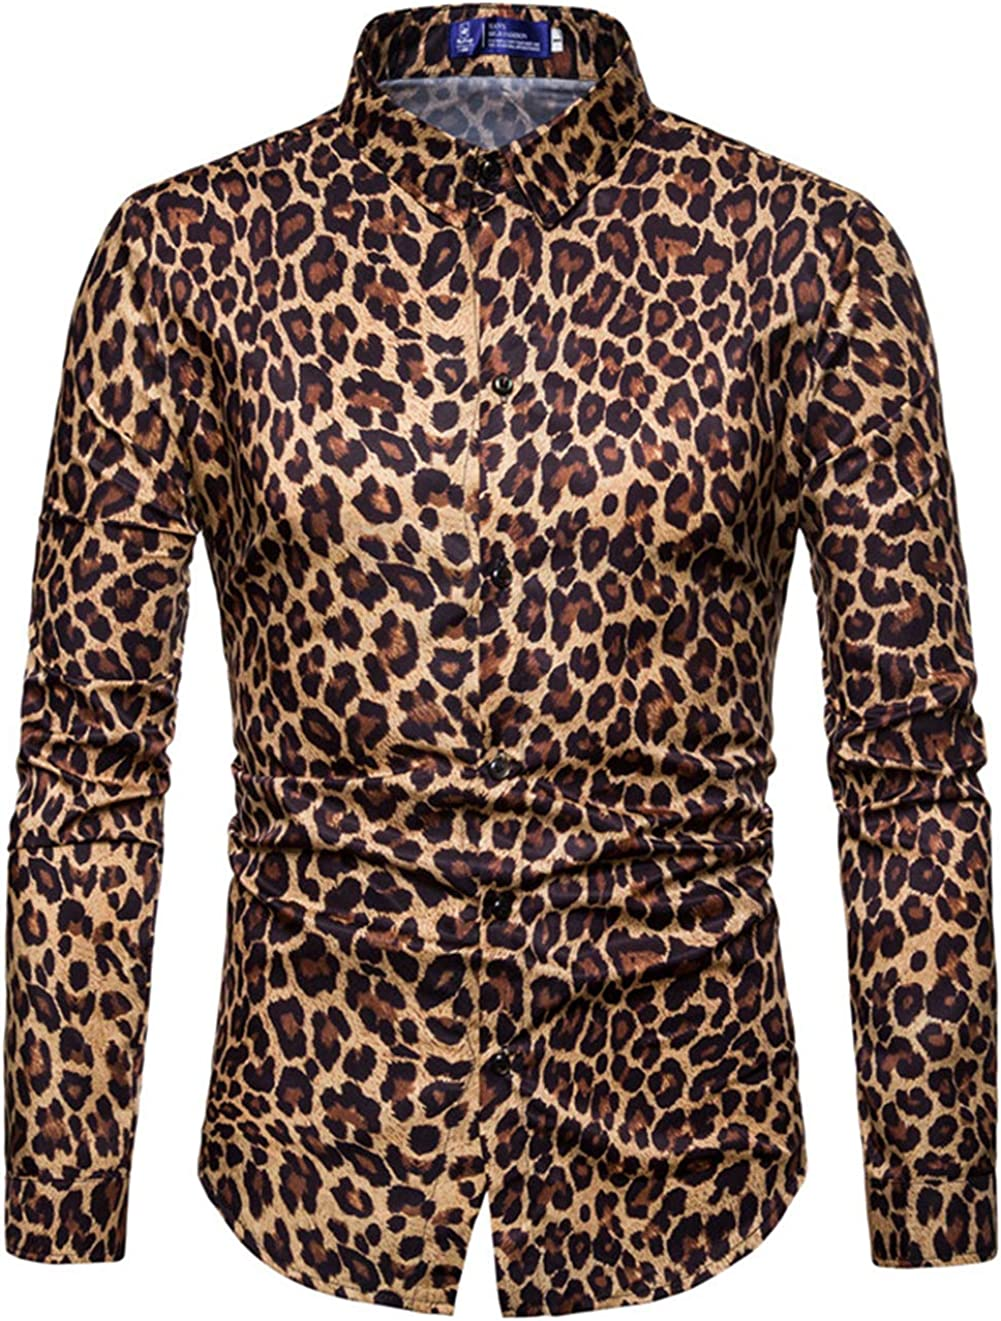 XTAPAN Mens Long Sleeve Fit Slim Fashion Vintage Leopard Print Casual Button Down Dress Shirt